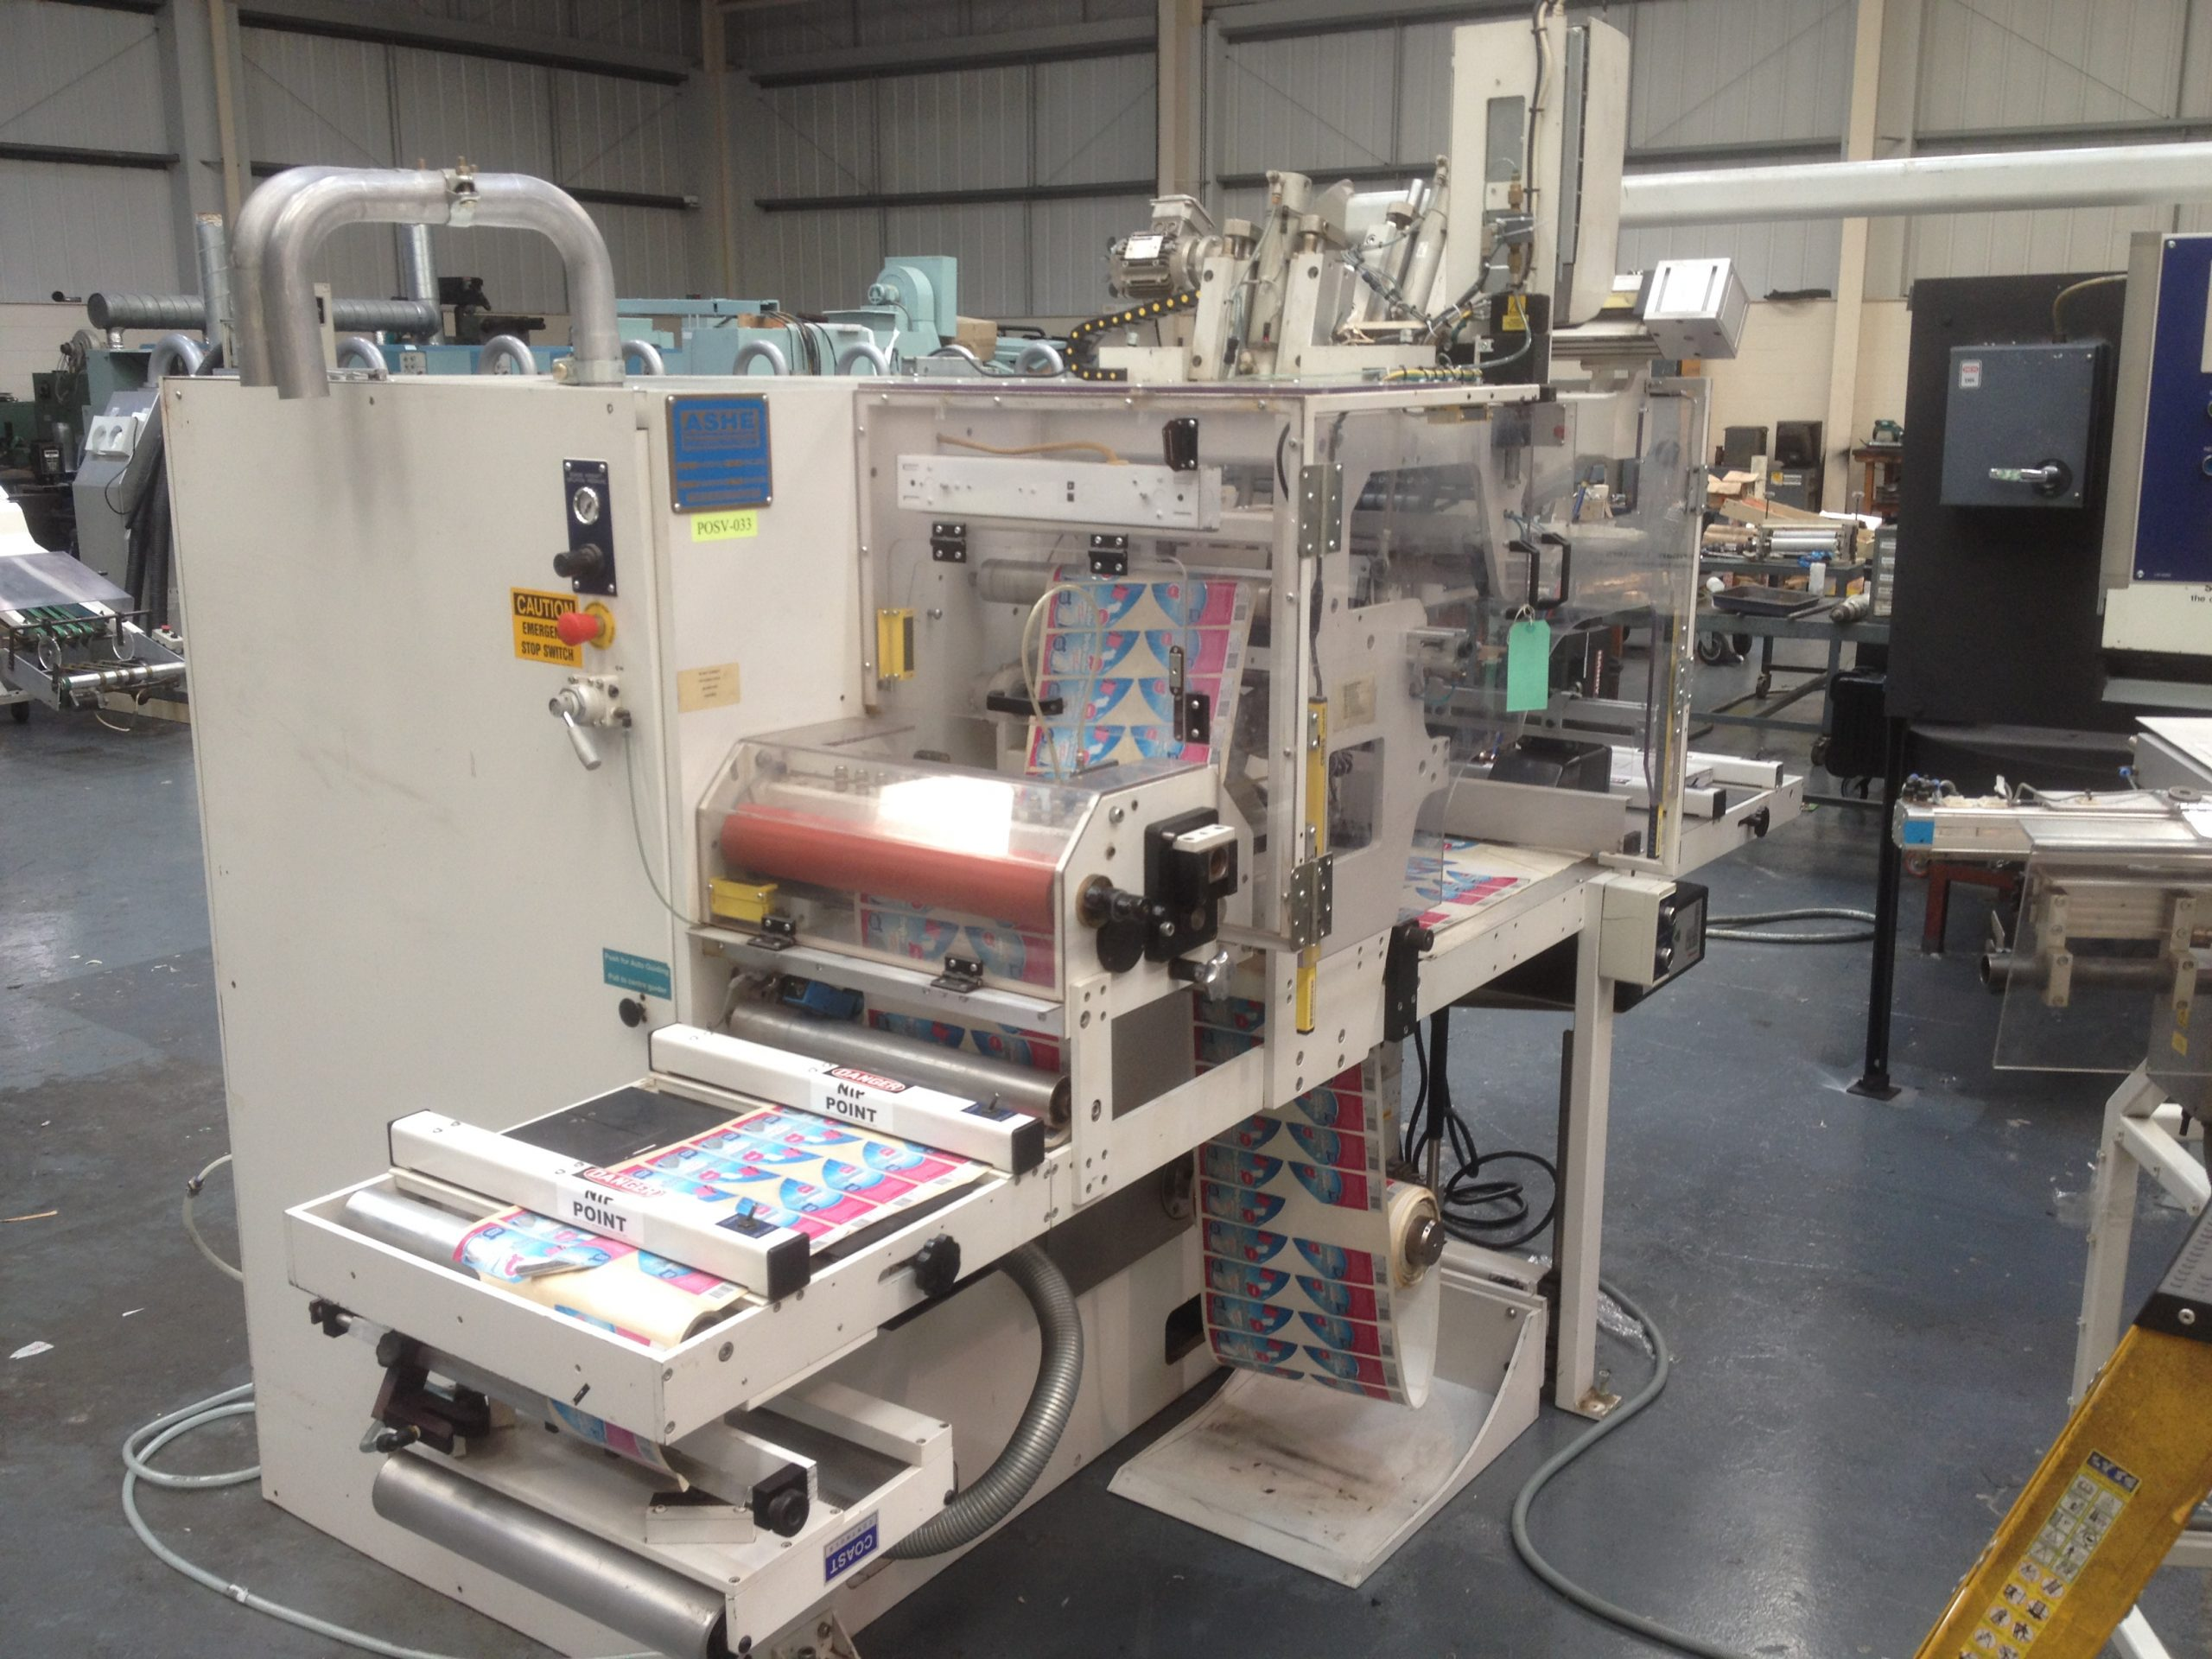 Ashe Opal 330 - Used Flexo Printing Presses and Used Flexographic Equipment-0